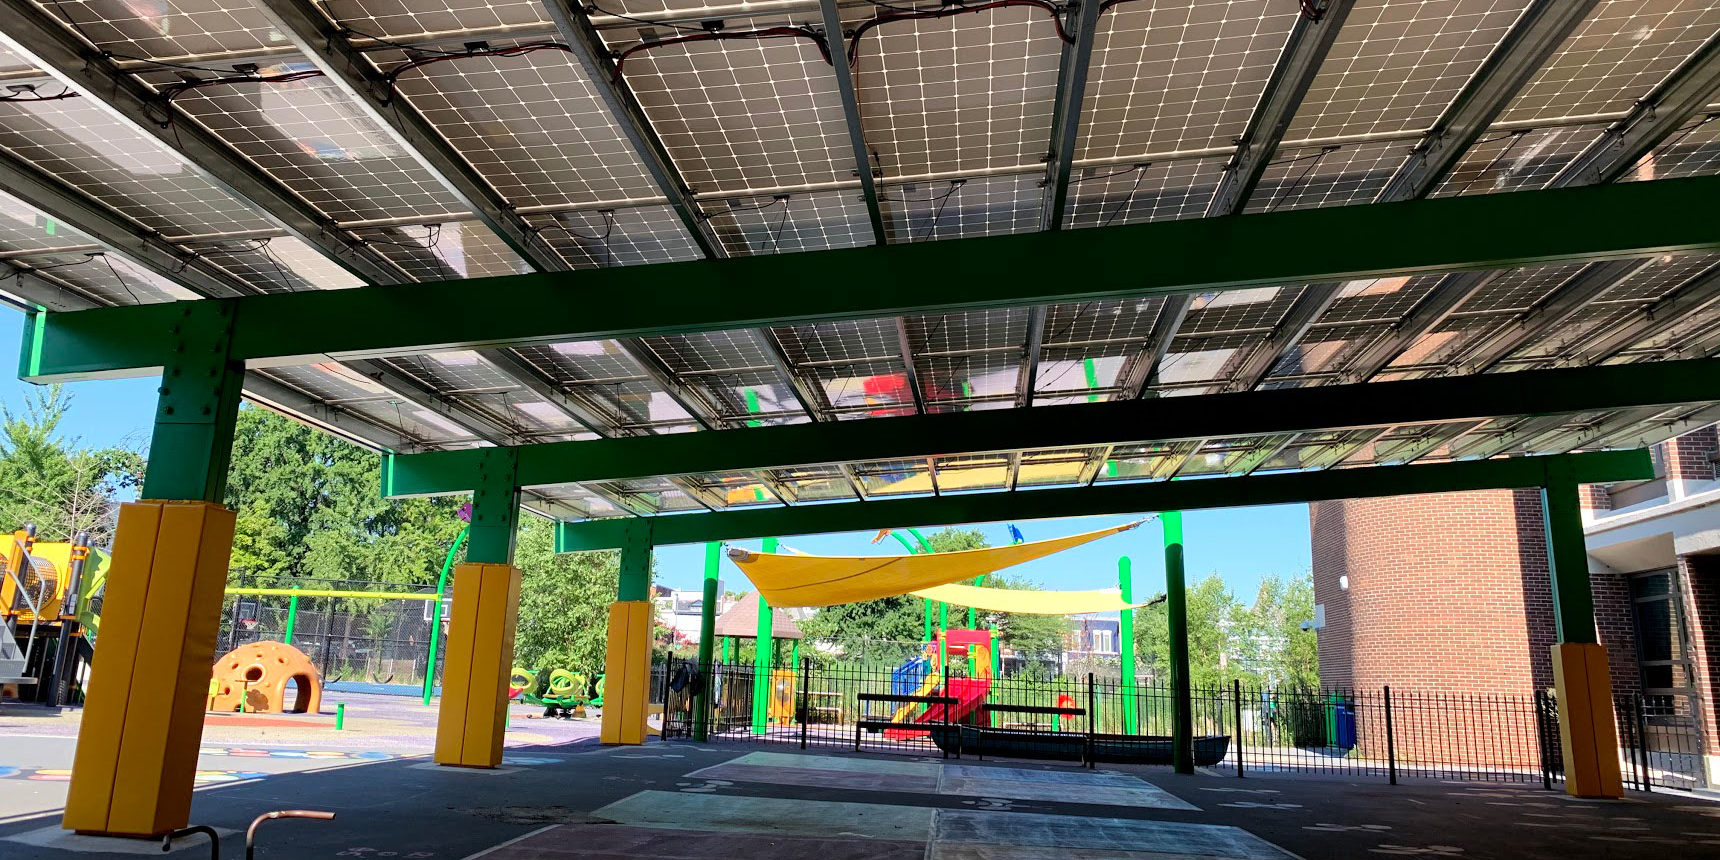 An eye-level view of Ludlow-Taylor Elementary School's solar panel roof. The photo appears to be taken under the roof and the four-square chalk area on the concrete is in front. Supportive pillars are on the left as well as a playground. Another playground set is in the backdrop behind a short iron fence. To the right is a brick building and further behind are trees, buildings, and a clear, sunny sky.